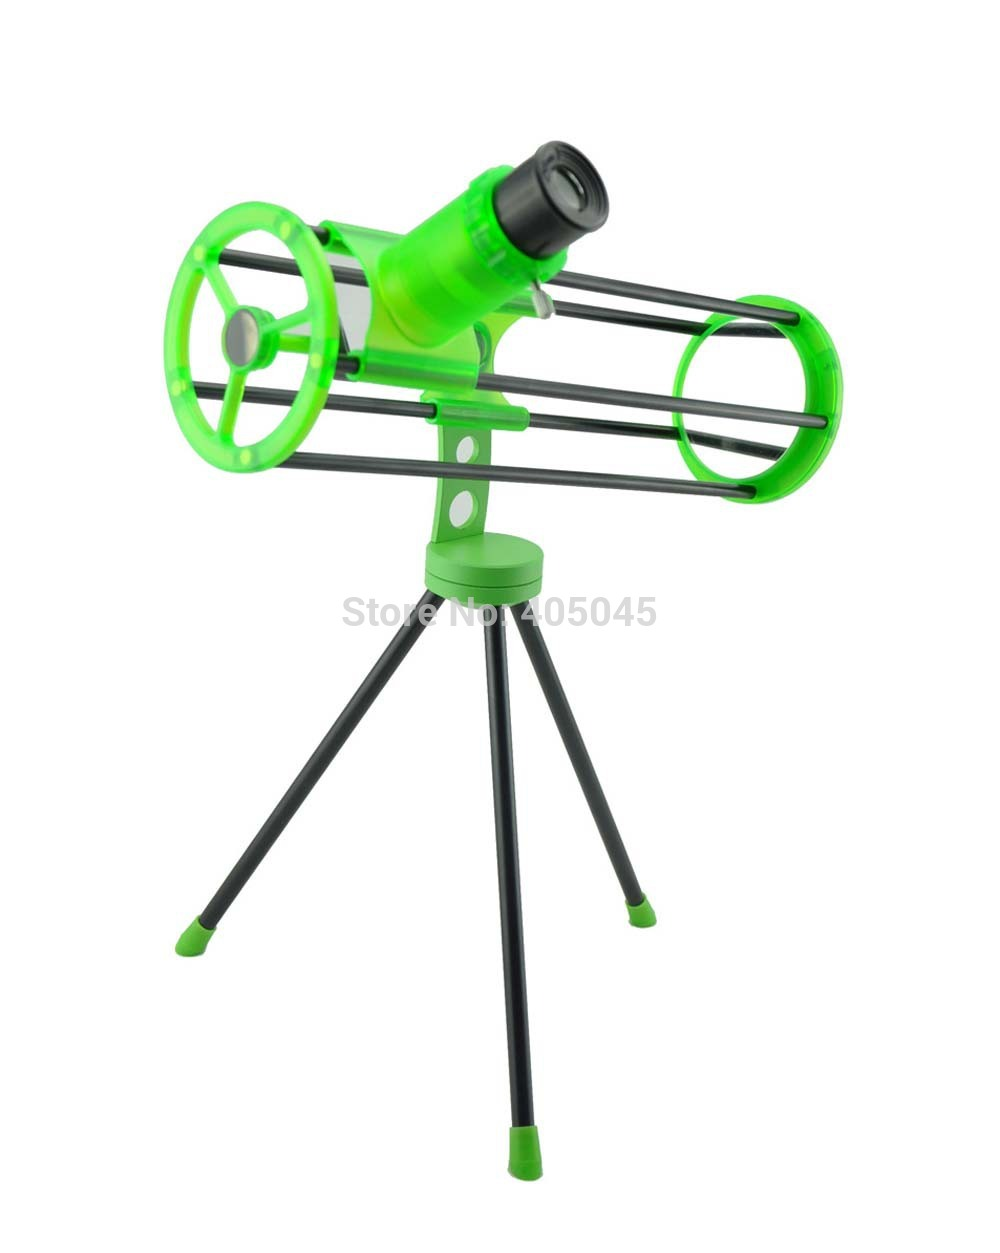 Visionking 76300 (76/300mm) Telescope Space Newtonian Reflector Astronomical Telescope Green 3 inch for beginner Kids Gift newtonian reflector telescope spider w secondary mirror holder f 8 caliber